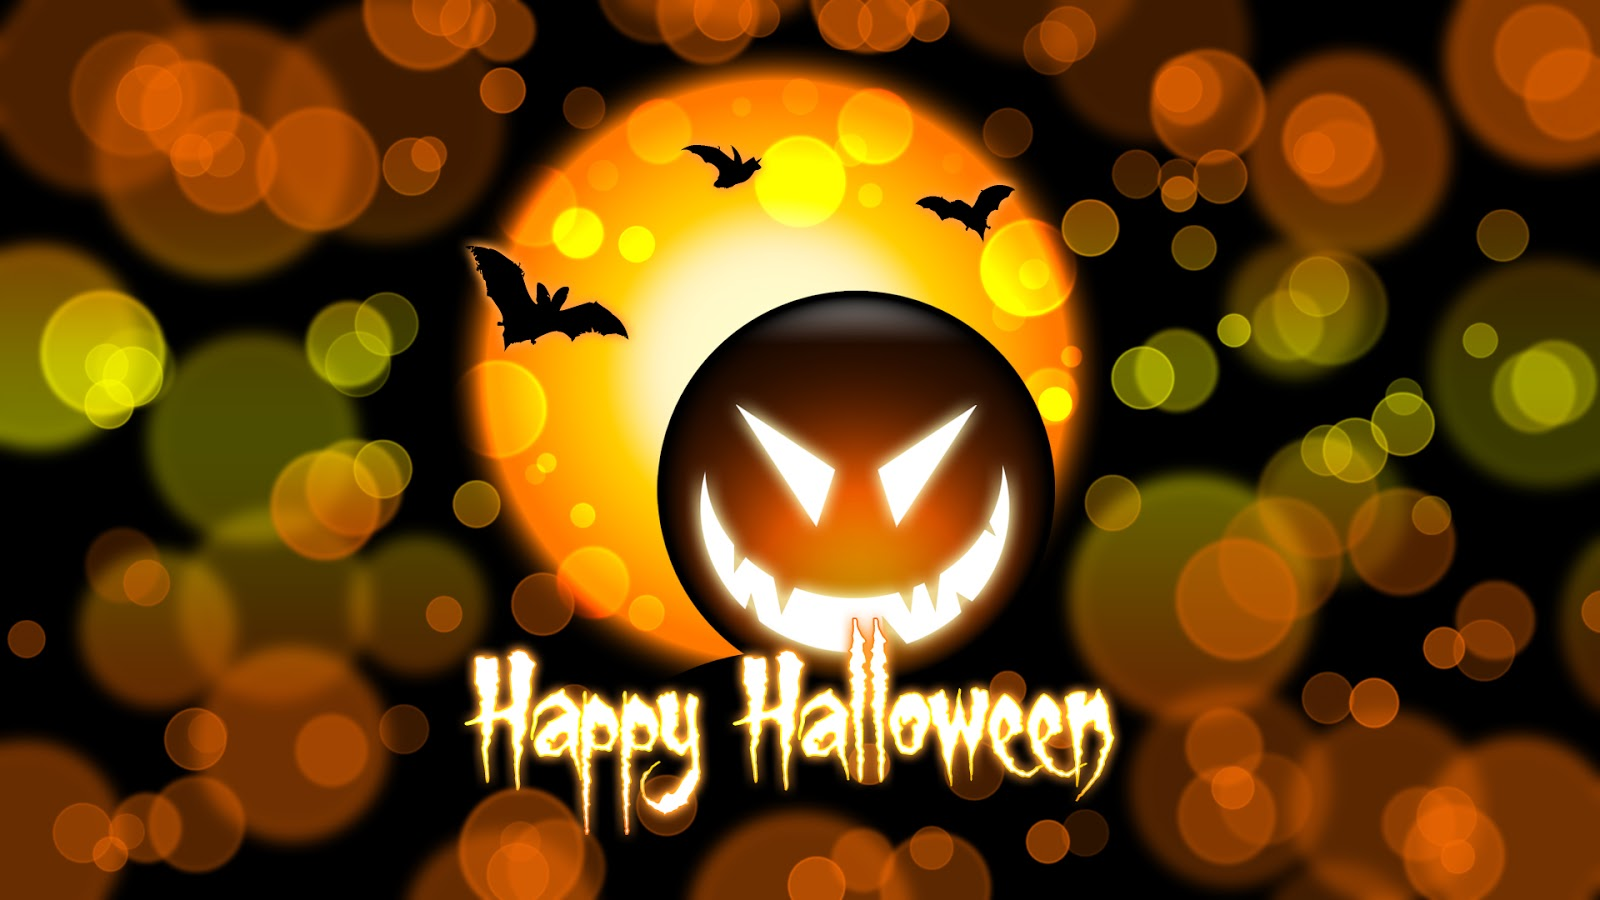 Happy Halloween wishescards animations greetings emotions 1600x900